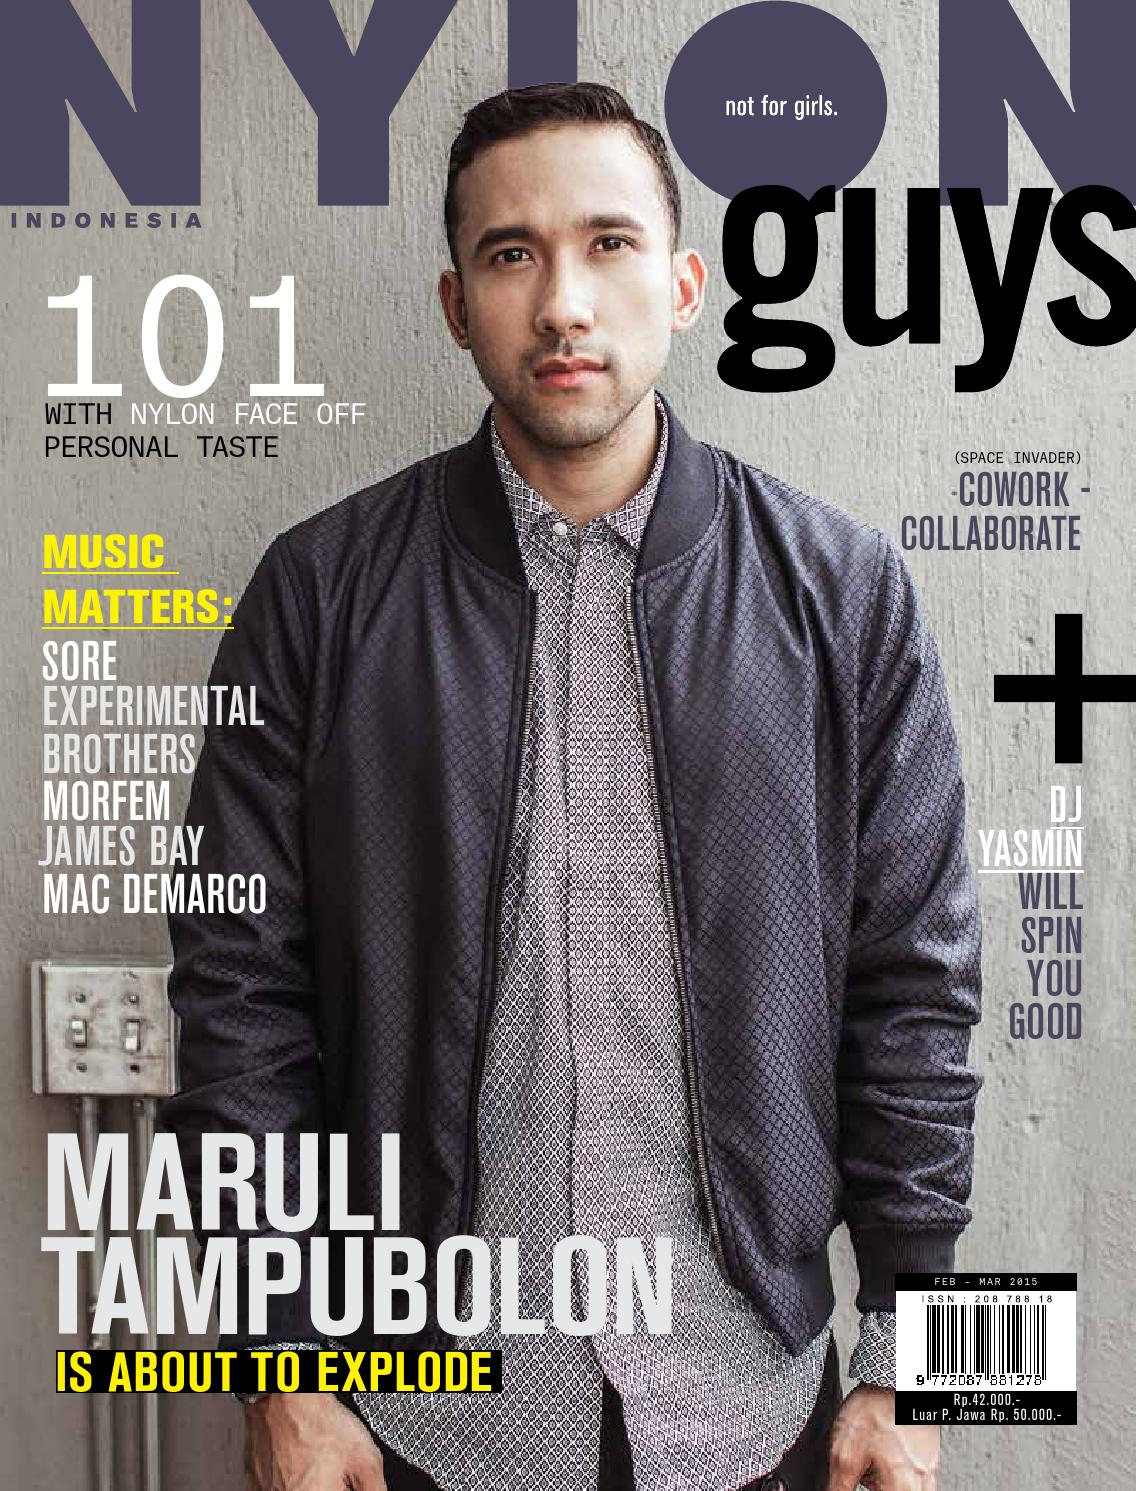 NYLONguys Indonesia Feb-March 2015 by Haris Juniarto - issuu